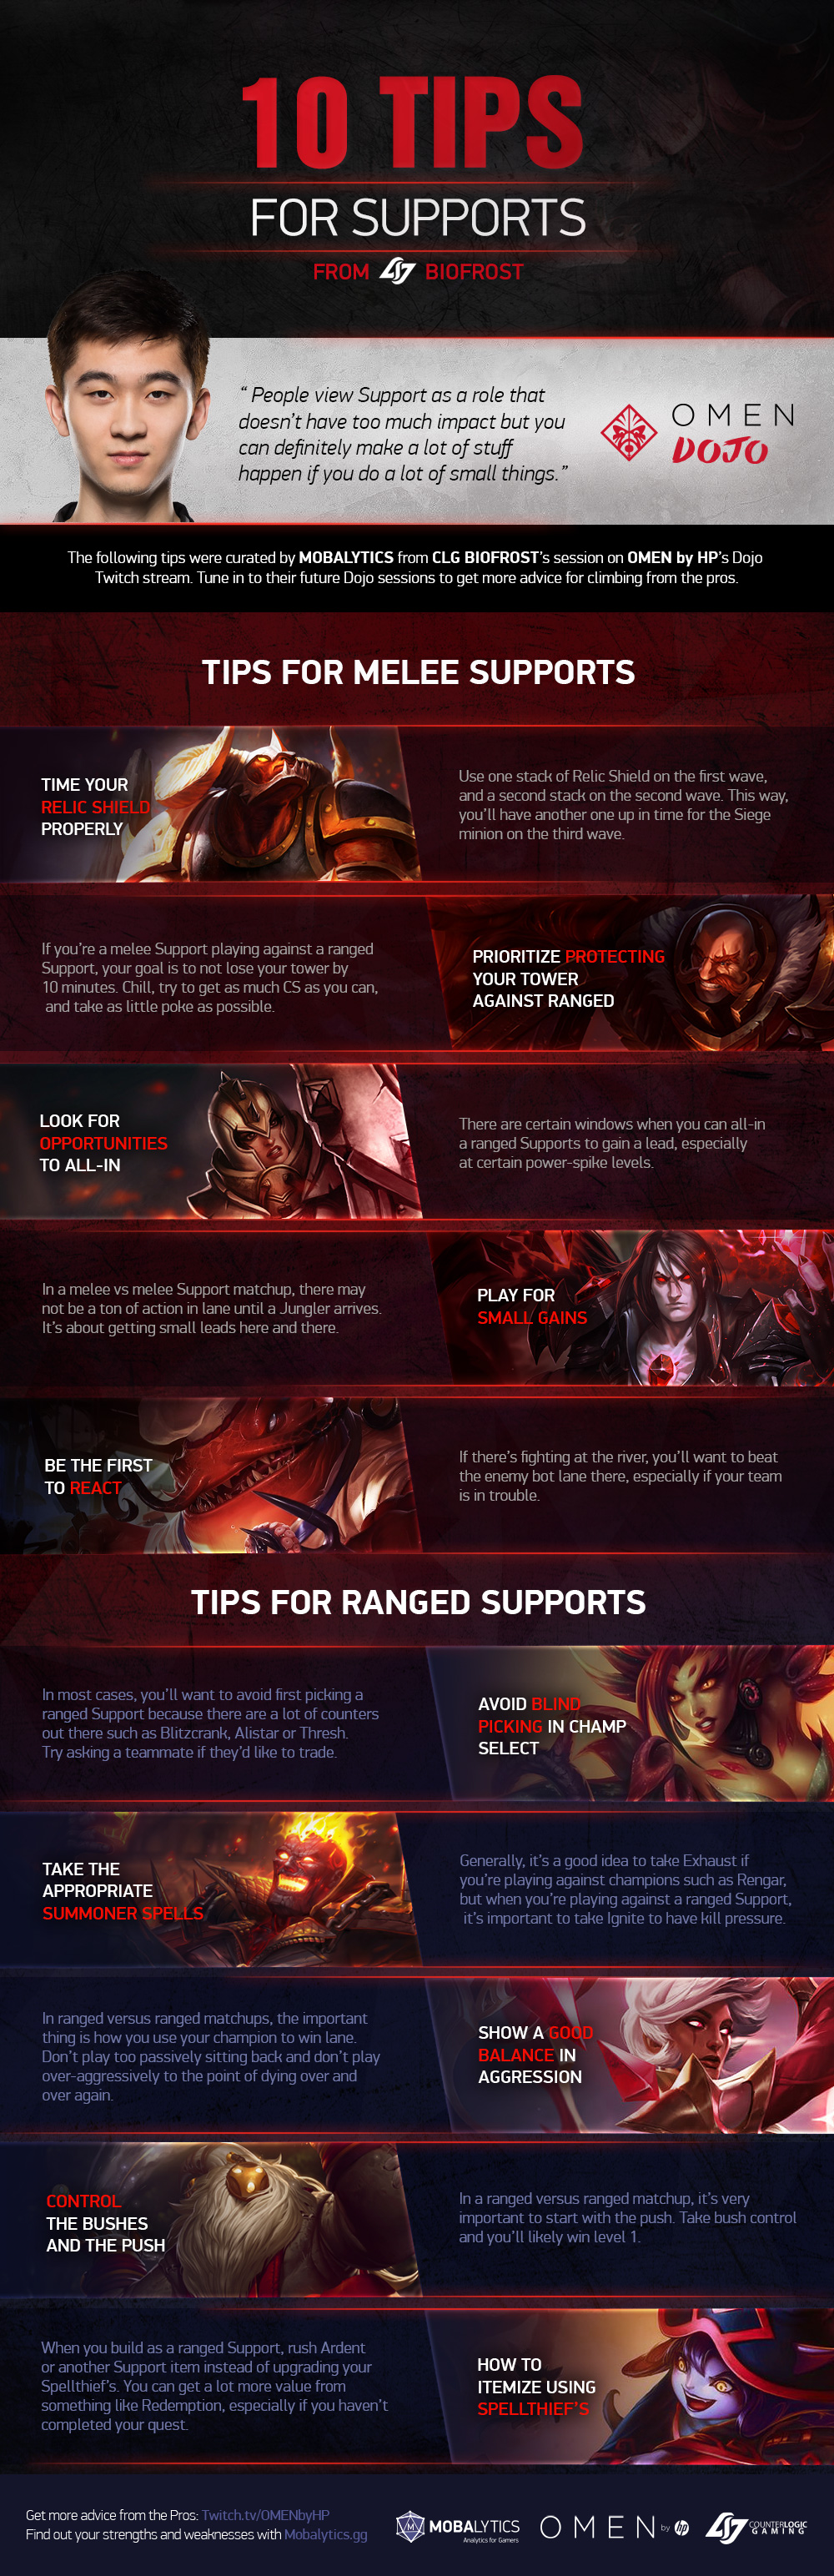 10 Tips for Supports Infographic